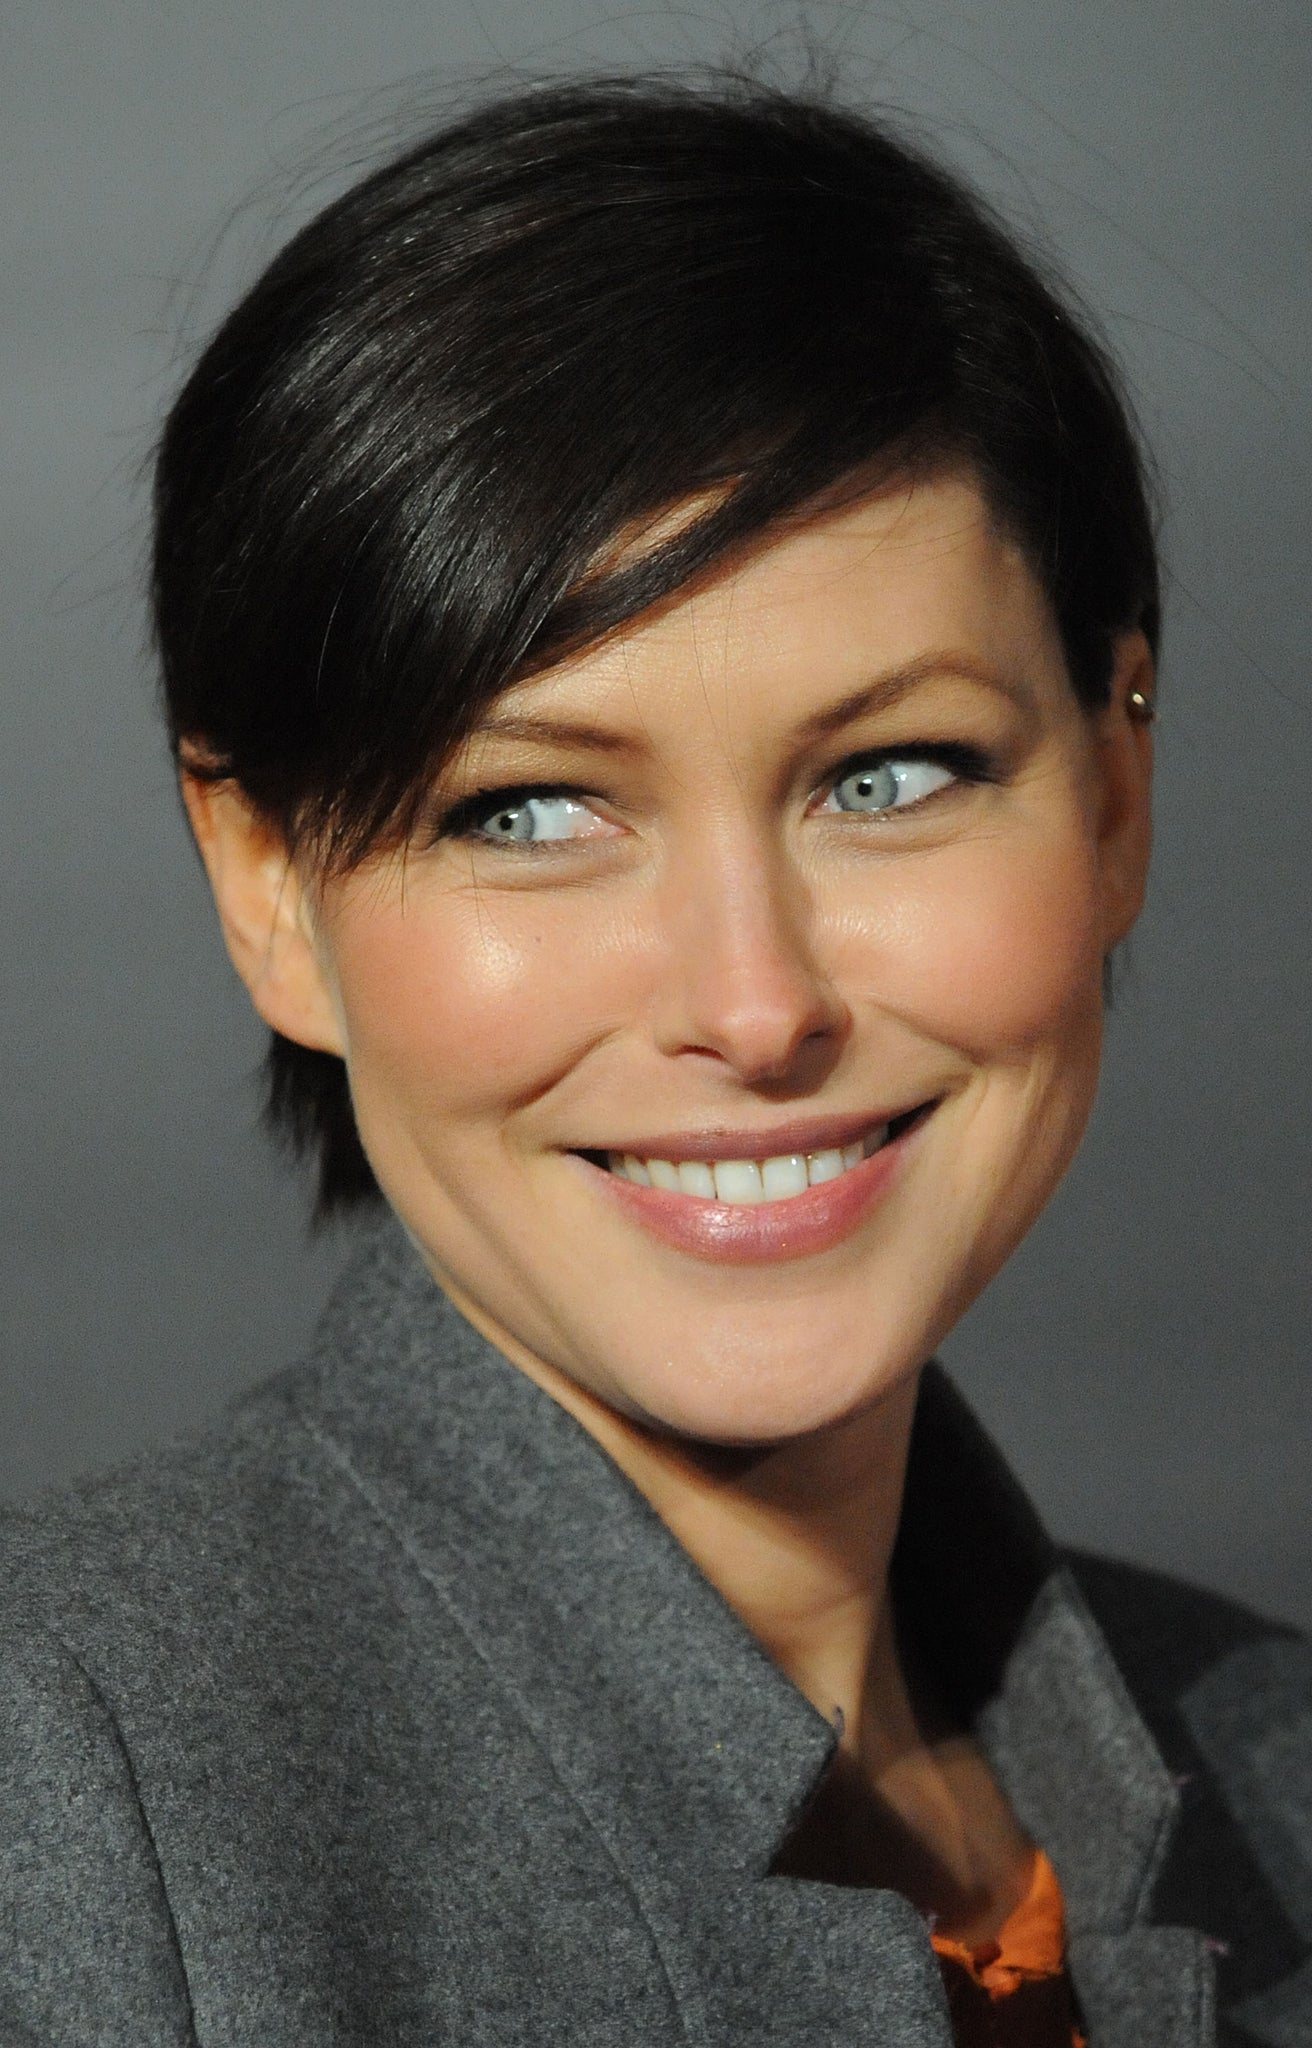 'Thrilled' Emma Willis ousts Brian Dowling as host of Big Brother   News   Culture   The Independent - 138850252